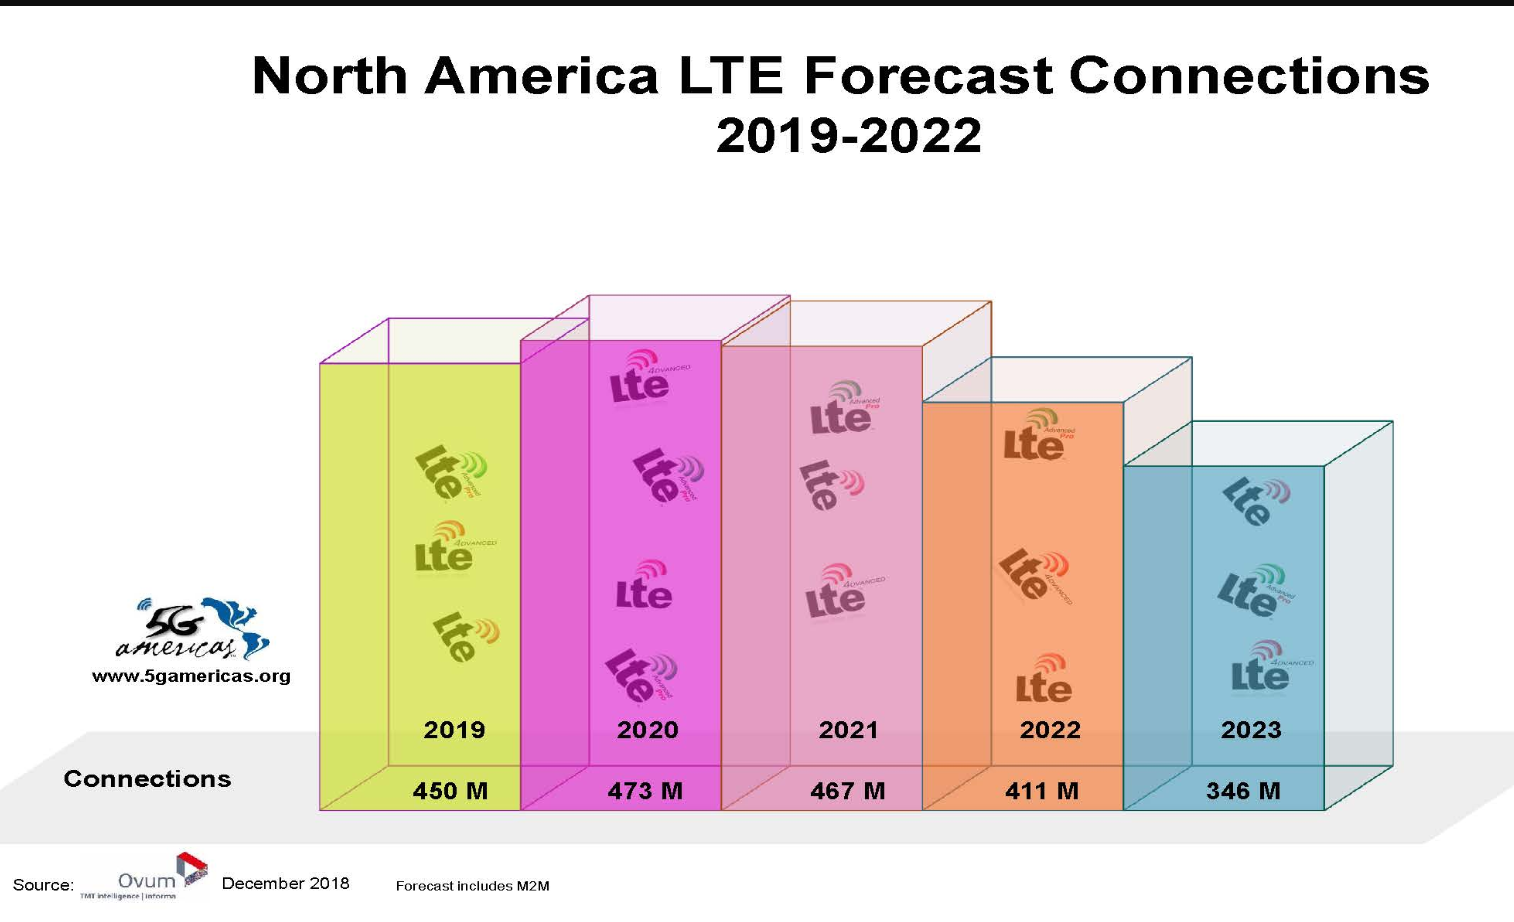 Converge! Network Digest: LTE accounts for 47% of cellular